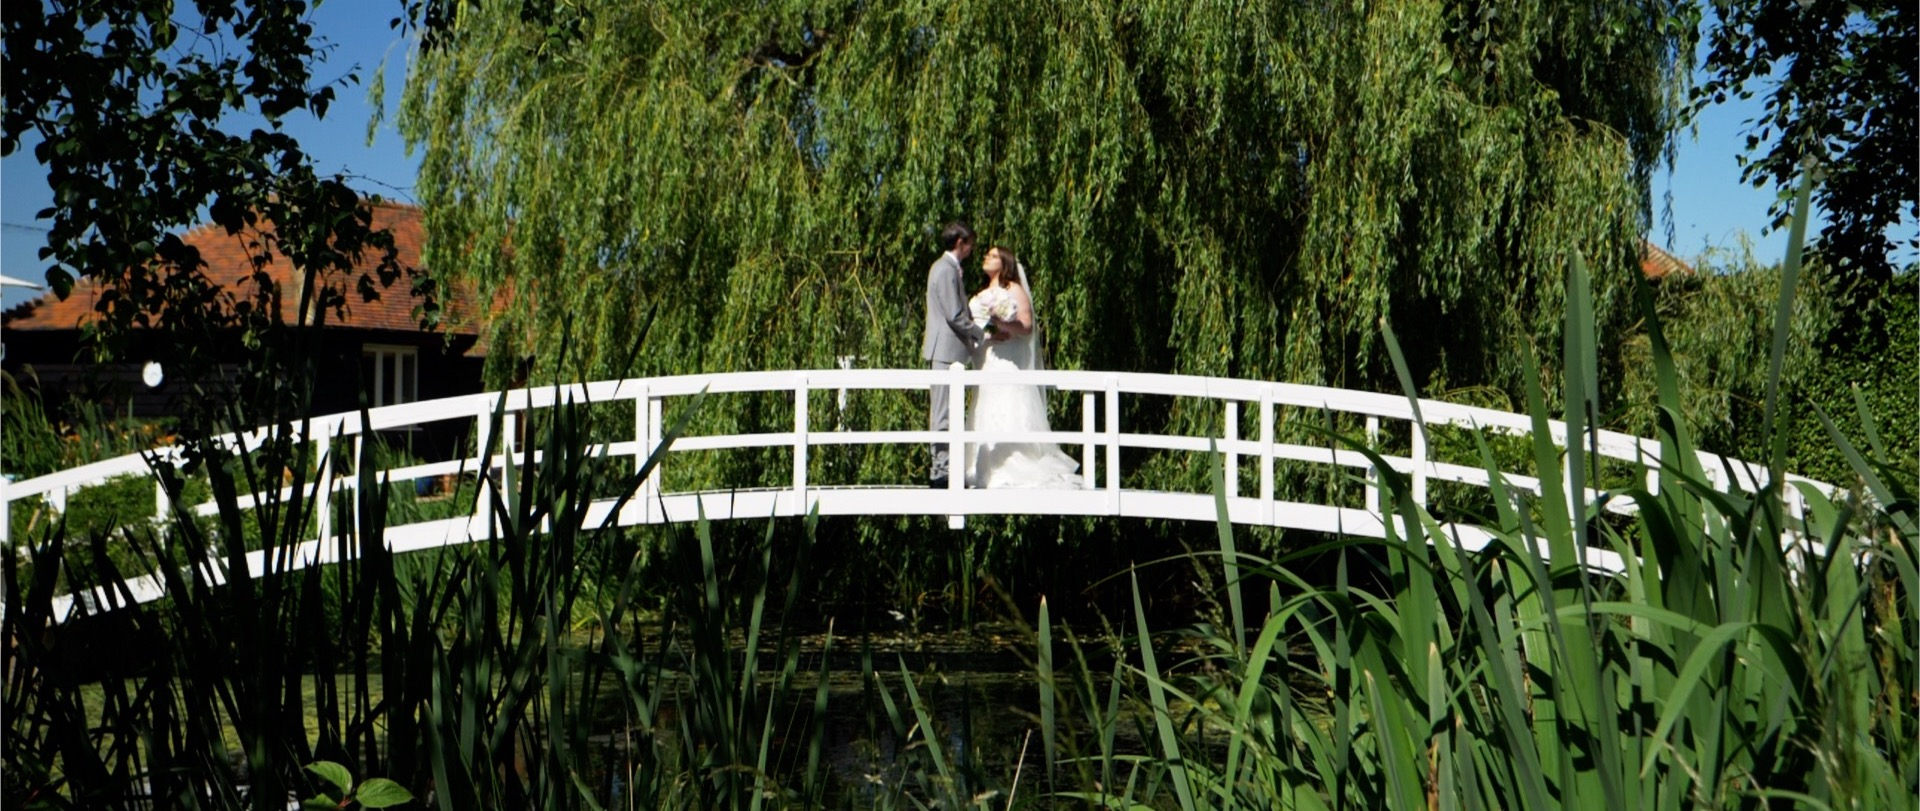 The Bridge at High House weddings essex.jpg